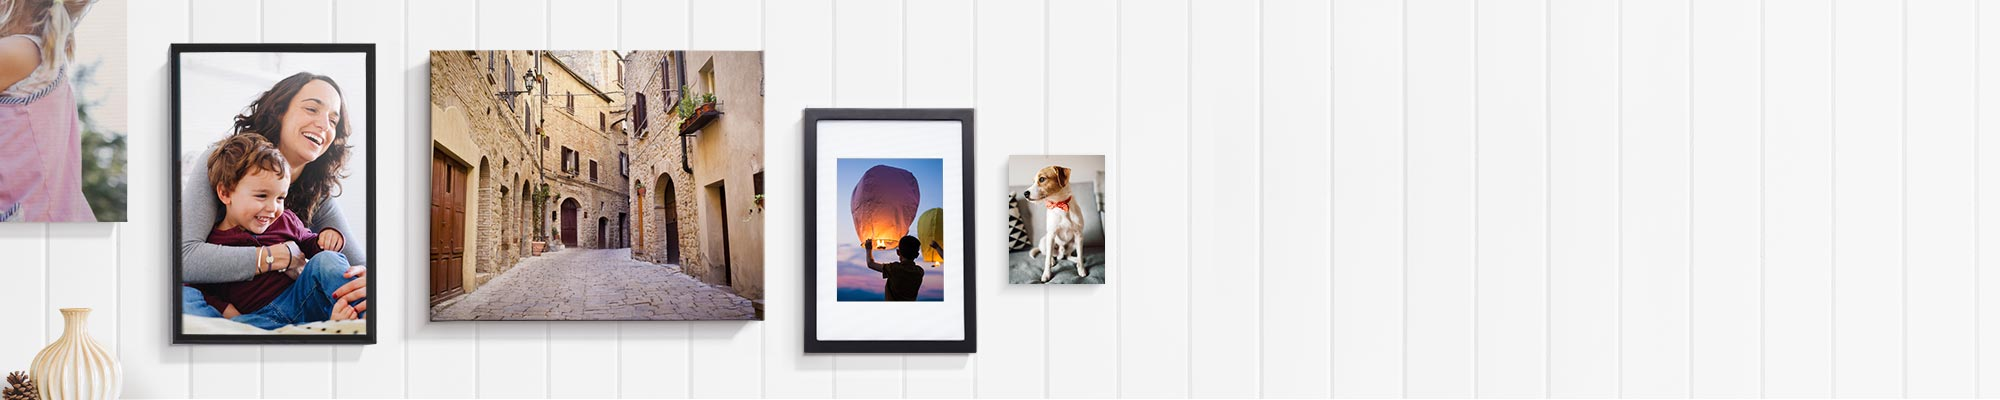 Canvas Prints Instill your most cherished memories in a quality wall hanging for all to admire.